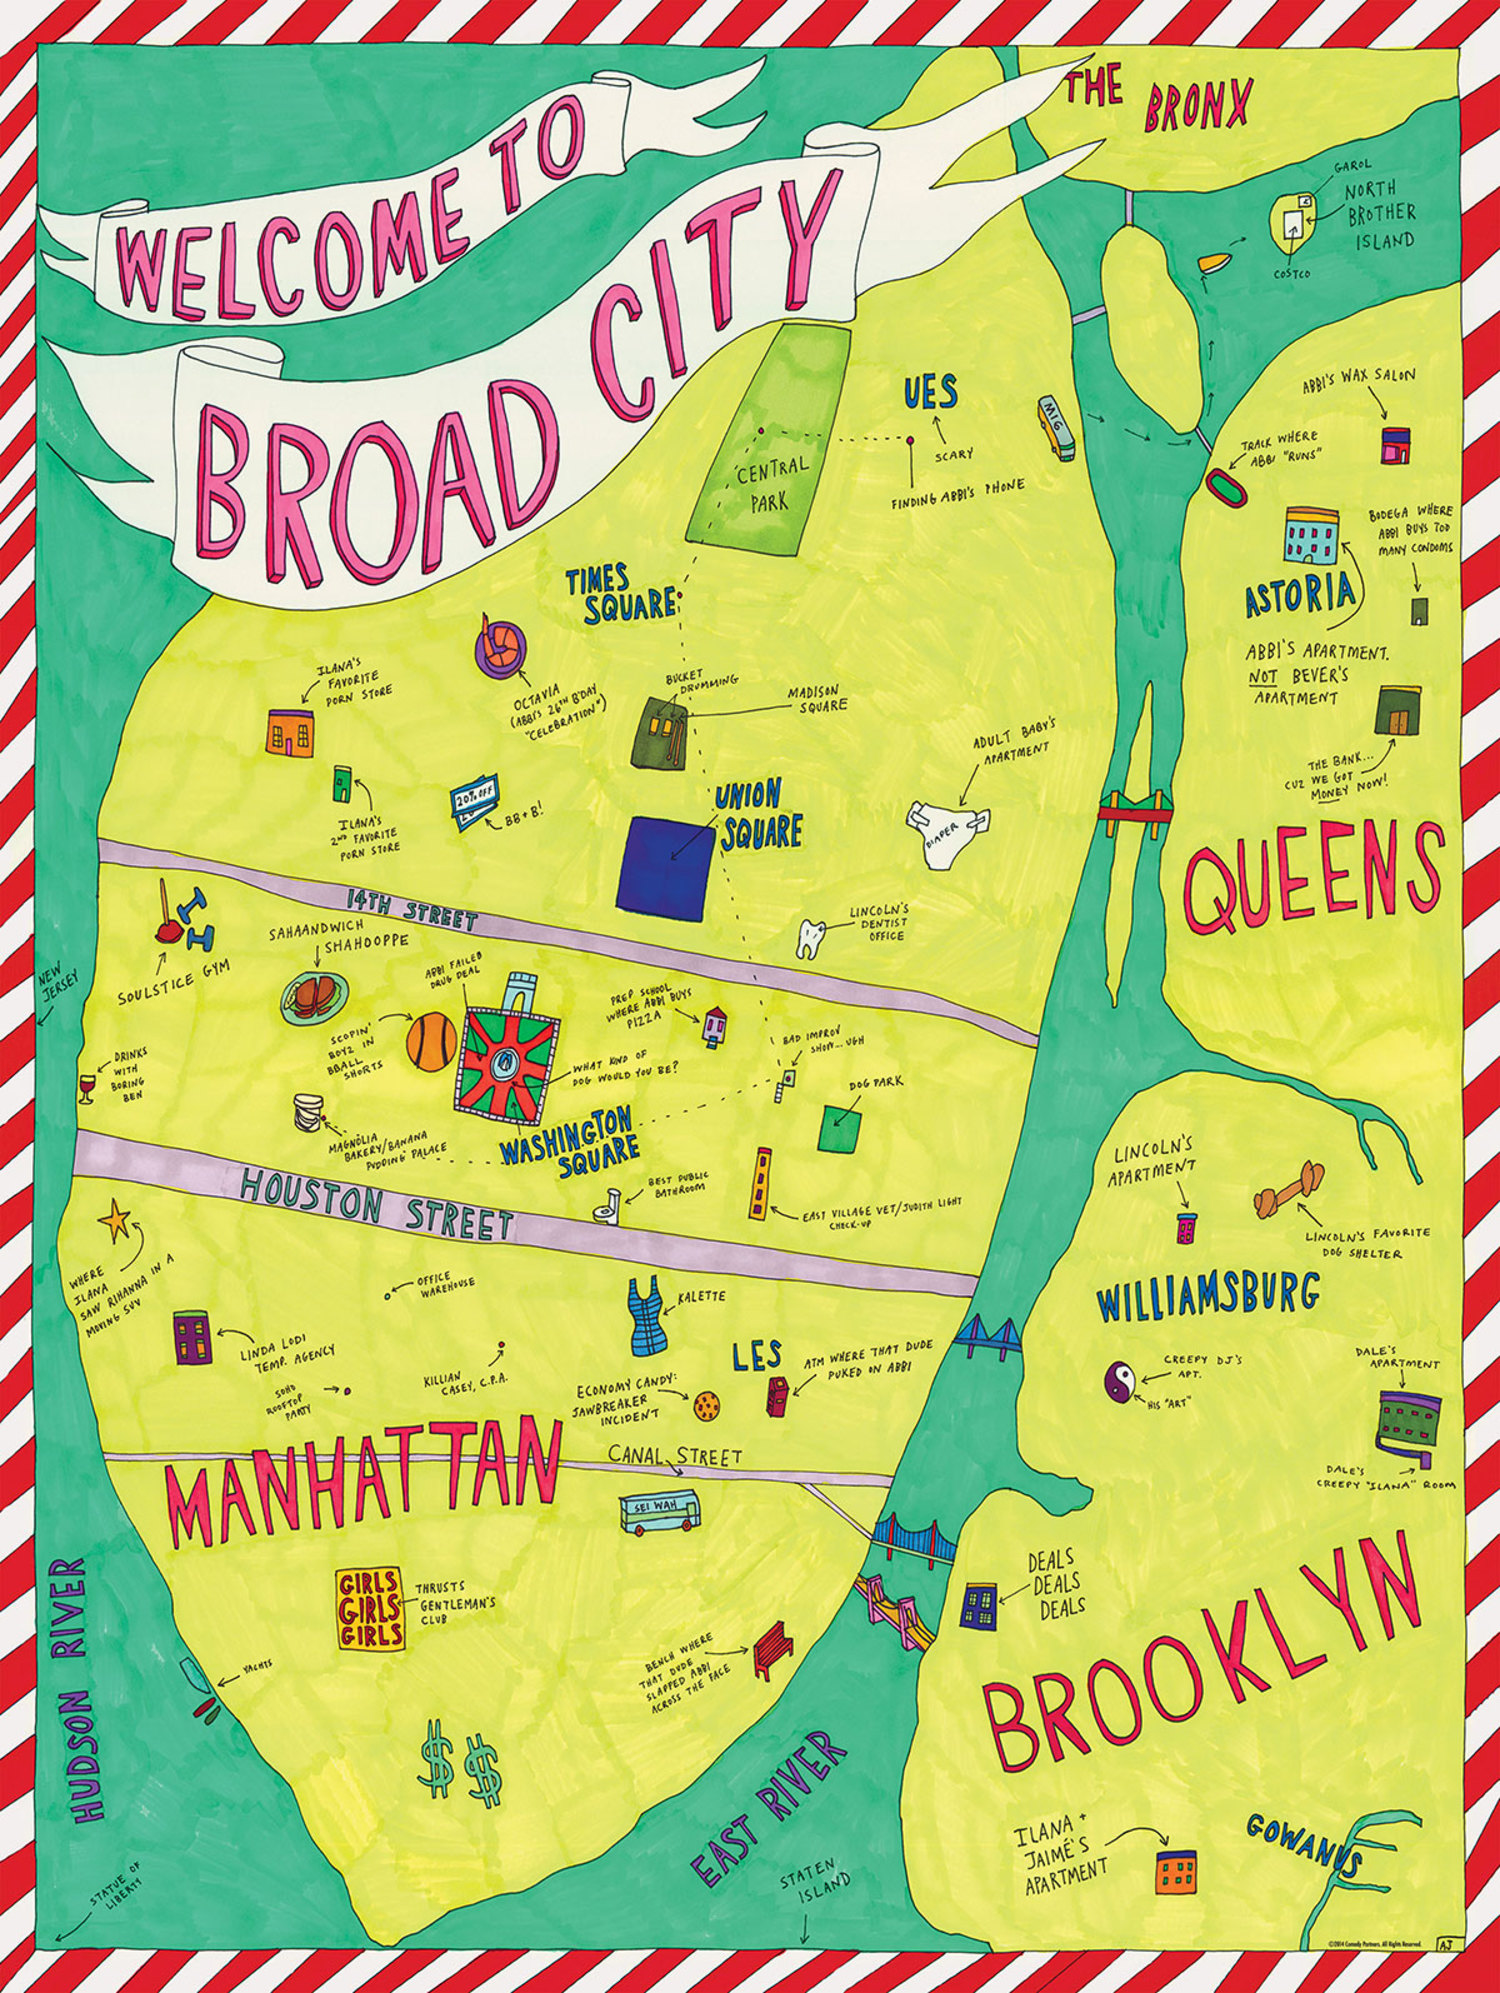 A Broad City Map of New York City, As Drawn By Abbi Jacobson ... on las vegas, map of honolulu, map of the northeast, empire state building, map of new york university, times square, map of las vegas, map of san diego, map of los angeles, statue of liberty, map of times square, map of brooklyn, map of manhattan, map of staten island, map of toronto, map of queens ny, map of cleveland ohio, map of 50 states, map of new york state, map of bronx, los angeles, map of world trade center, san francisco, central park, united states of america, new jersey, map of pennsylvania, map of washington dc, map of nevada,